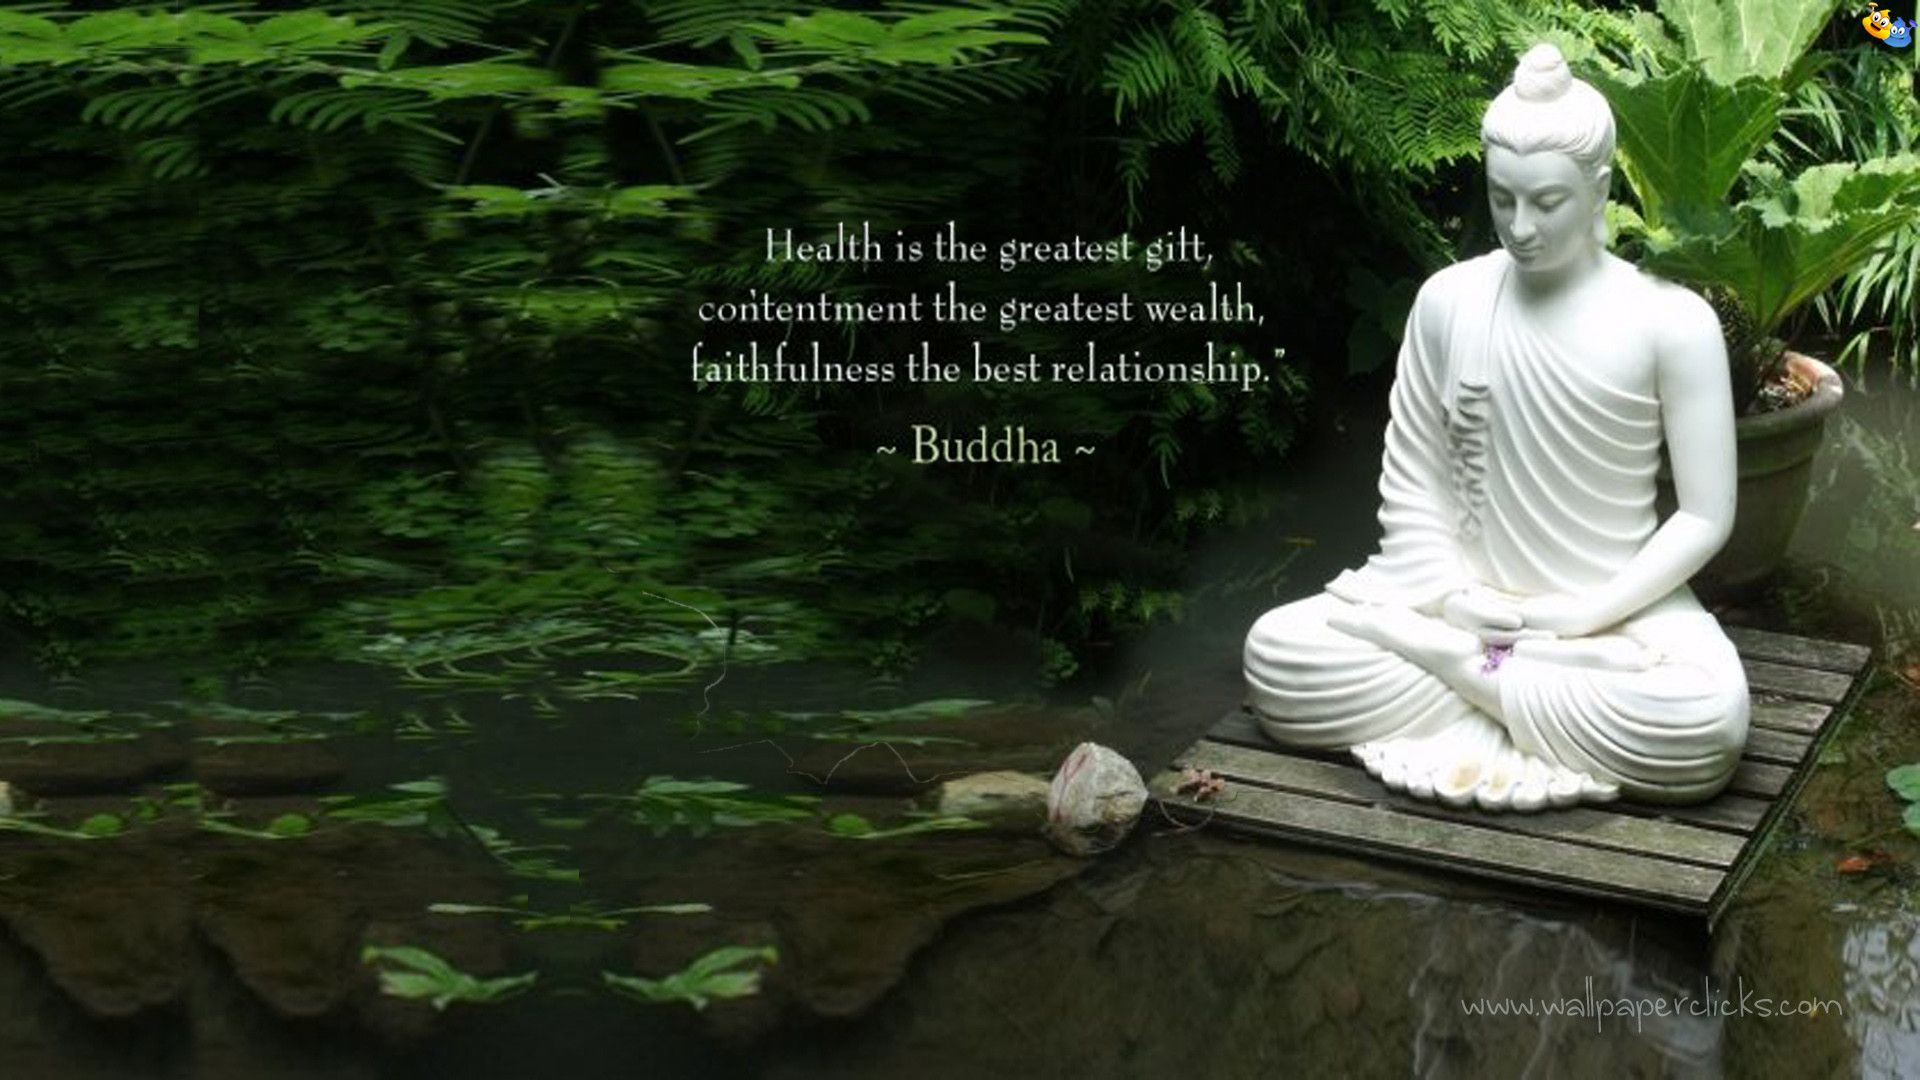 Zen Buddhist Wallpapers   Top Zen Buddhist Backgrounds 1920x1080